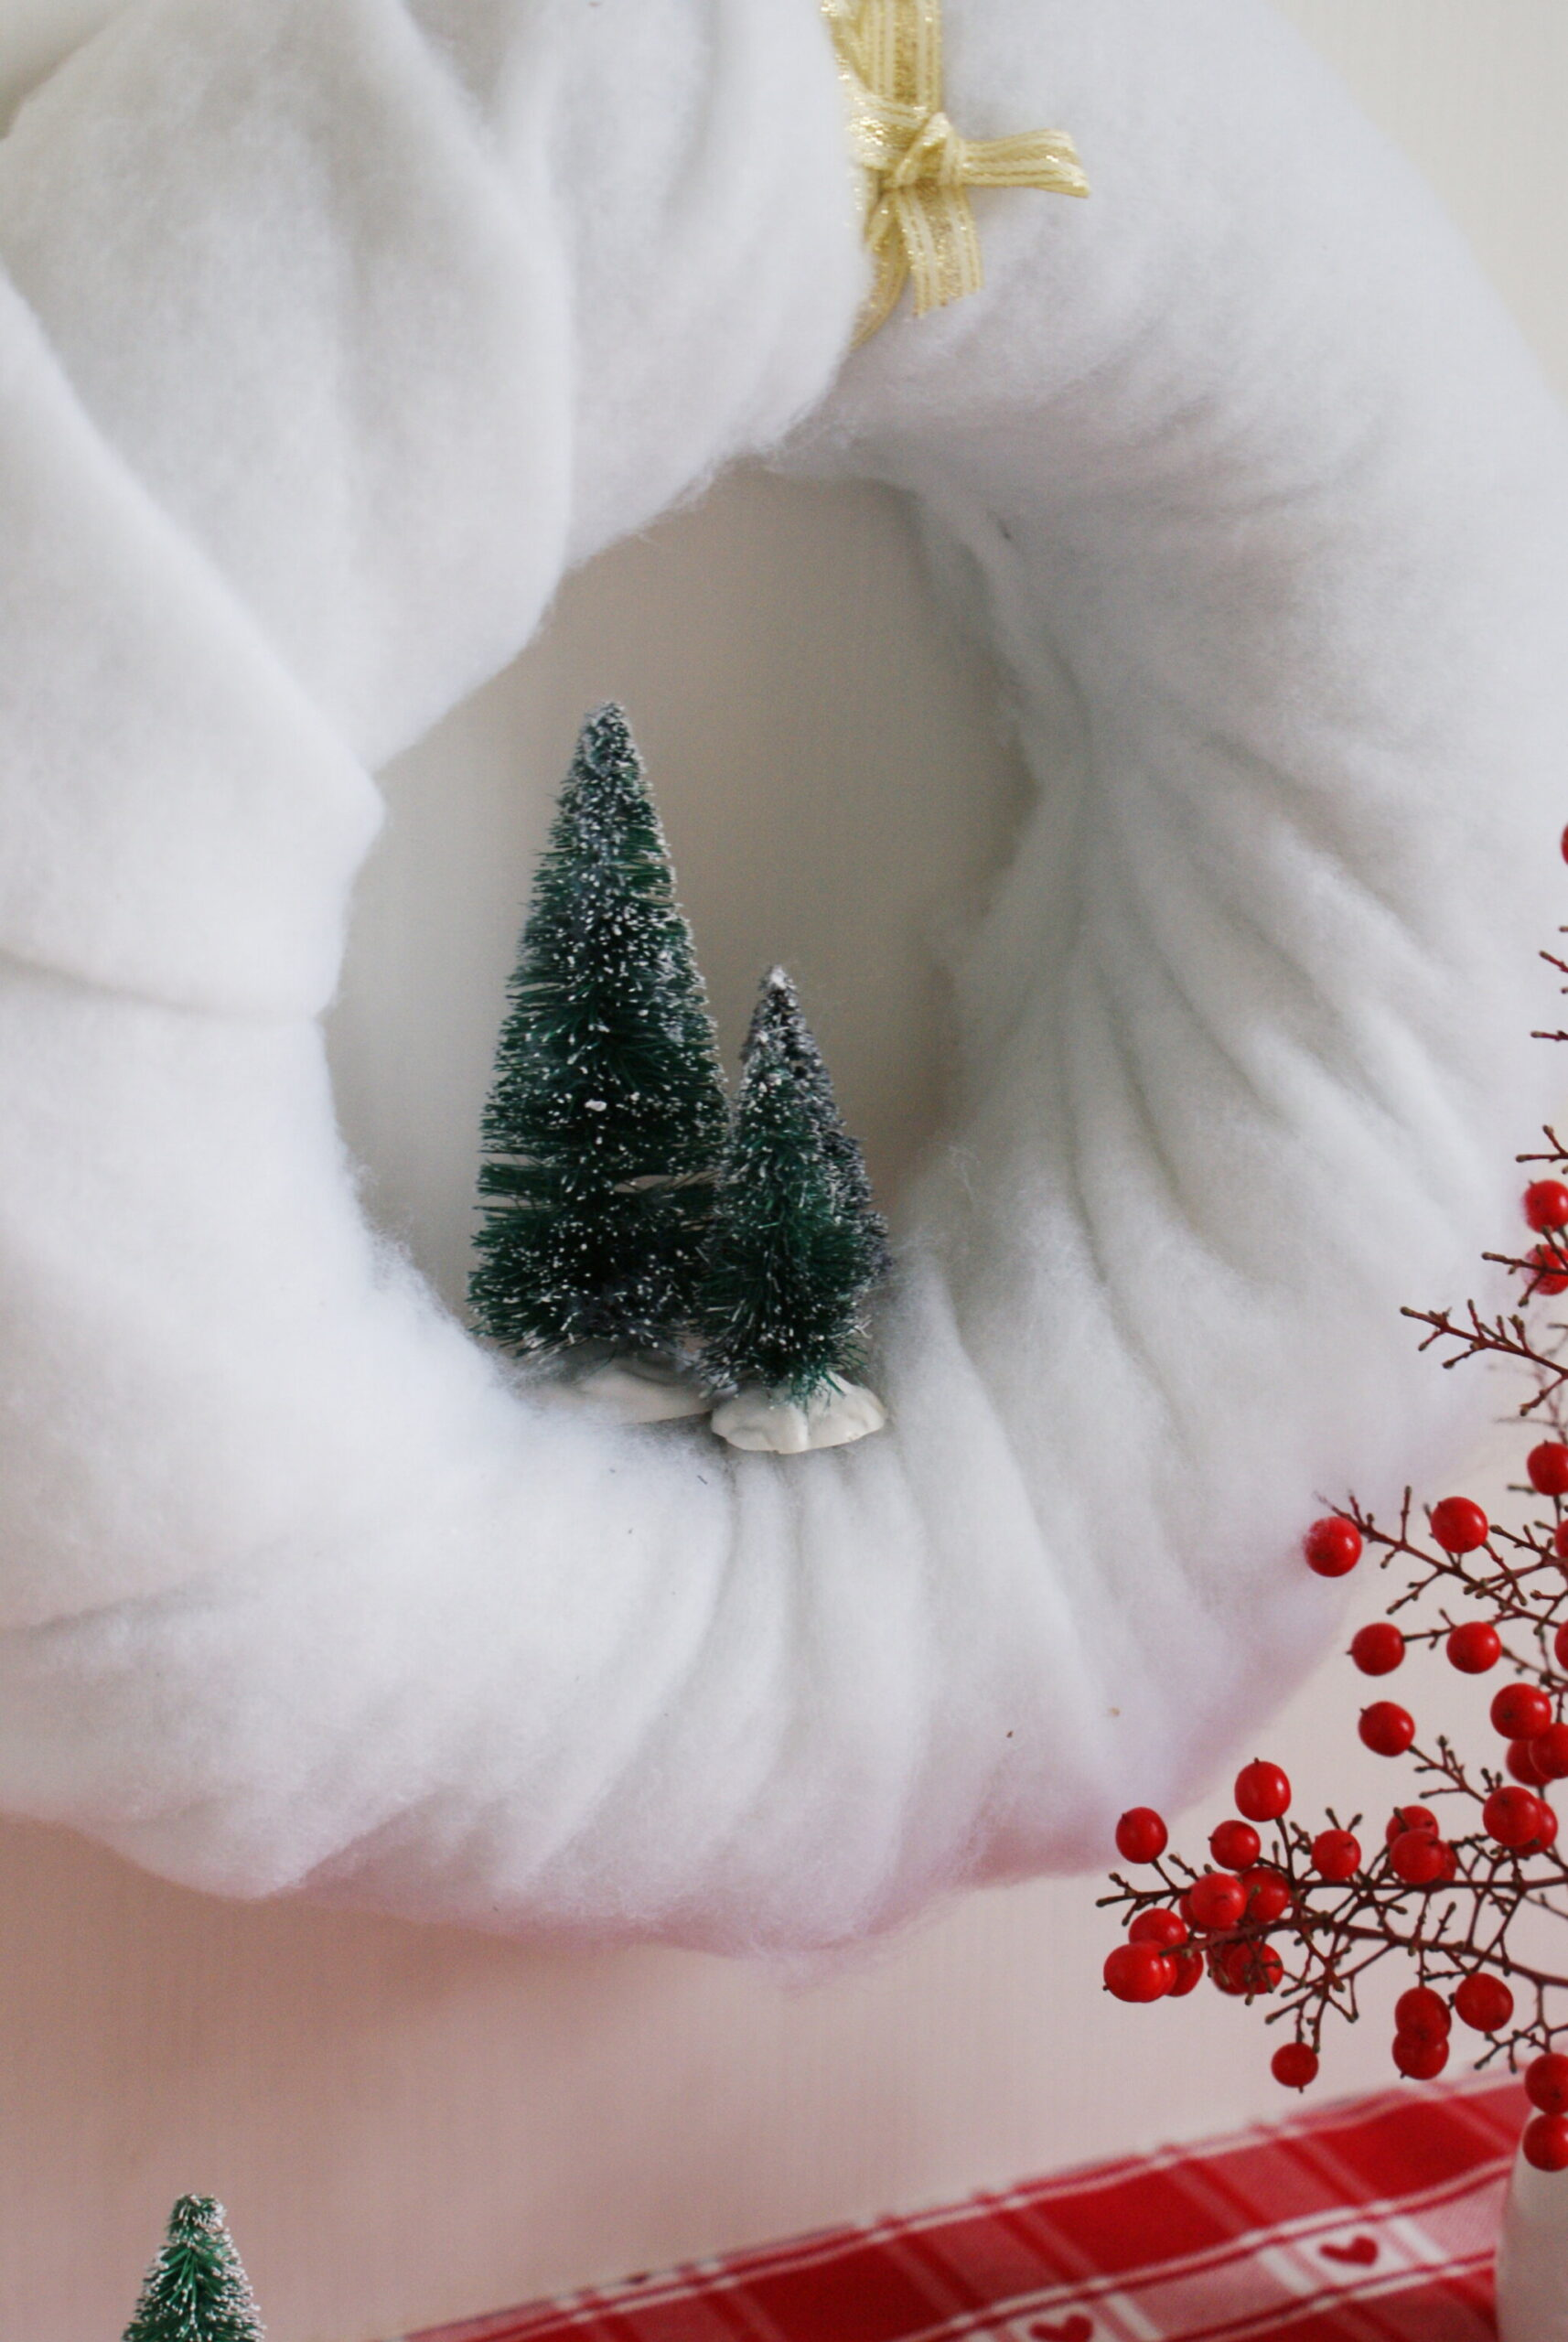 diy cotton snow wreath christmas handmade winter miniature tutorial easy decor idea miniature tree